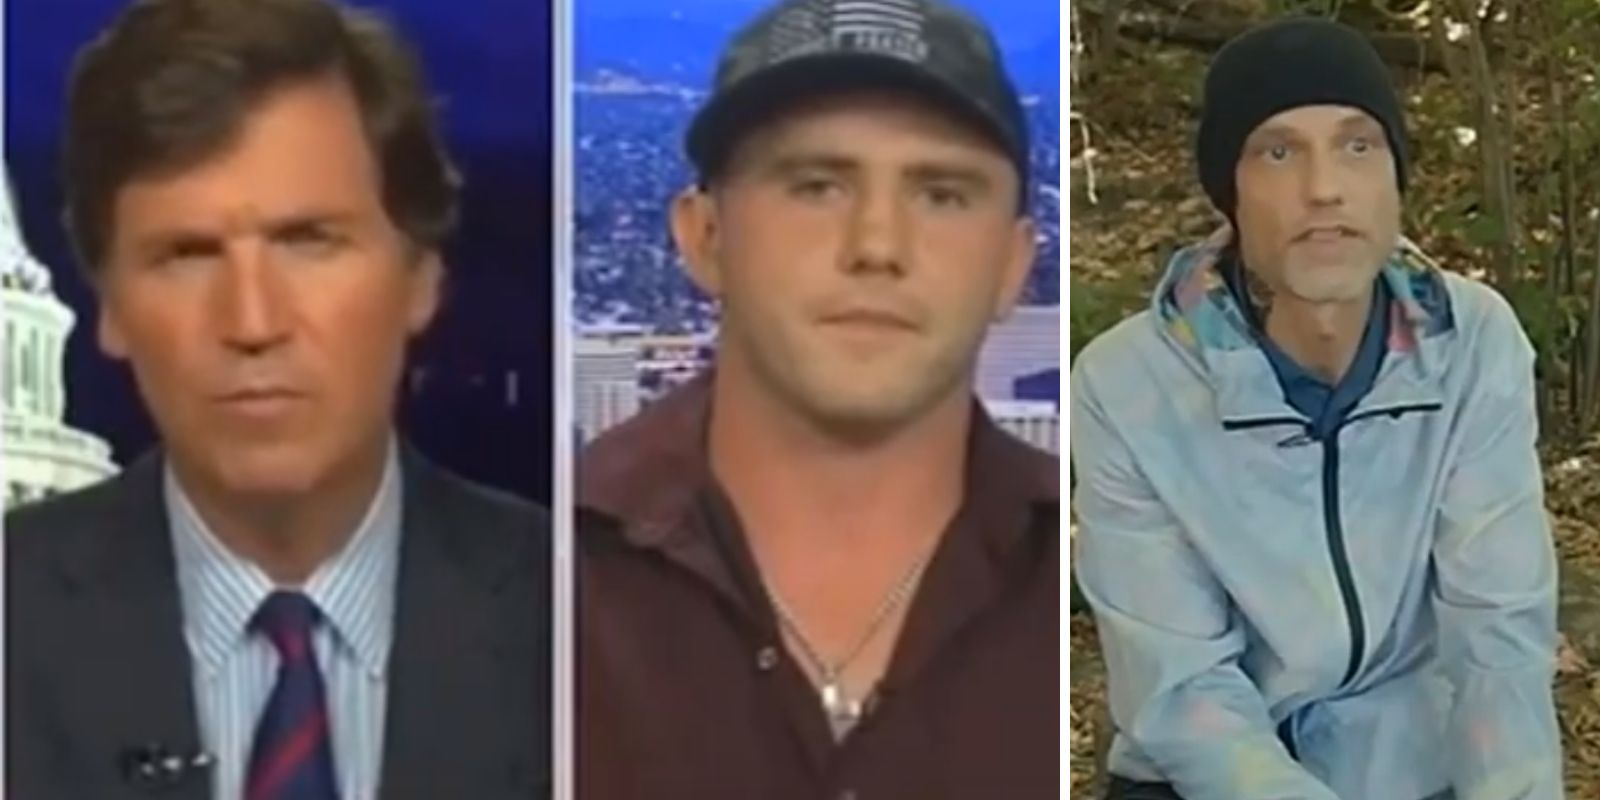 WATCH: Friend of murdered Trump supporter speaks out ahead of VICE interview of his friend's killer